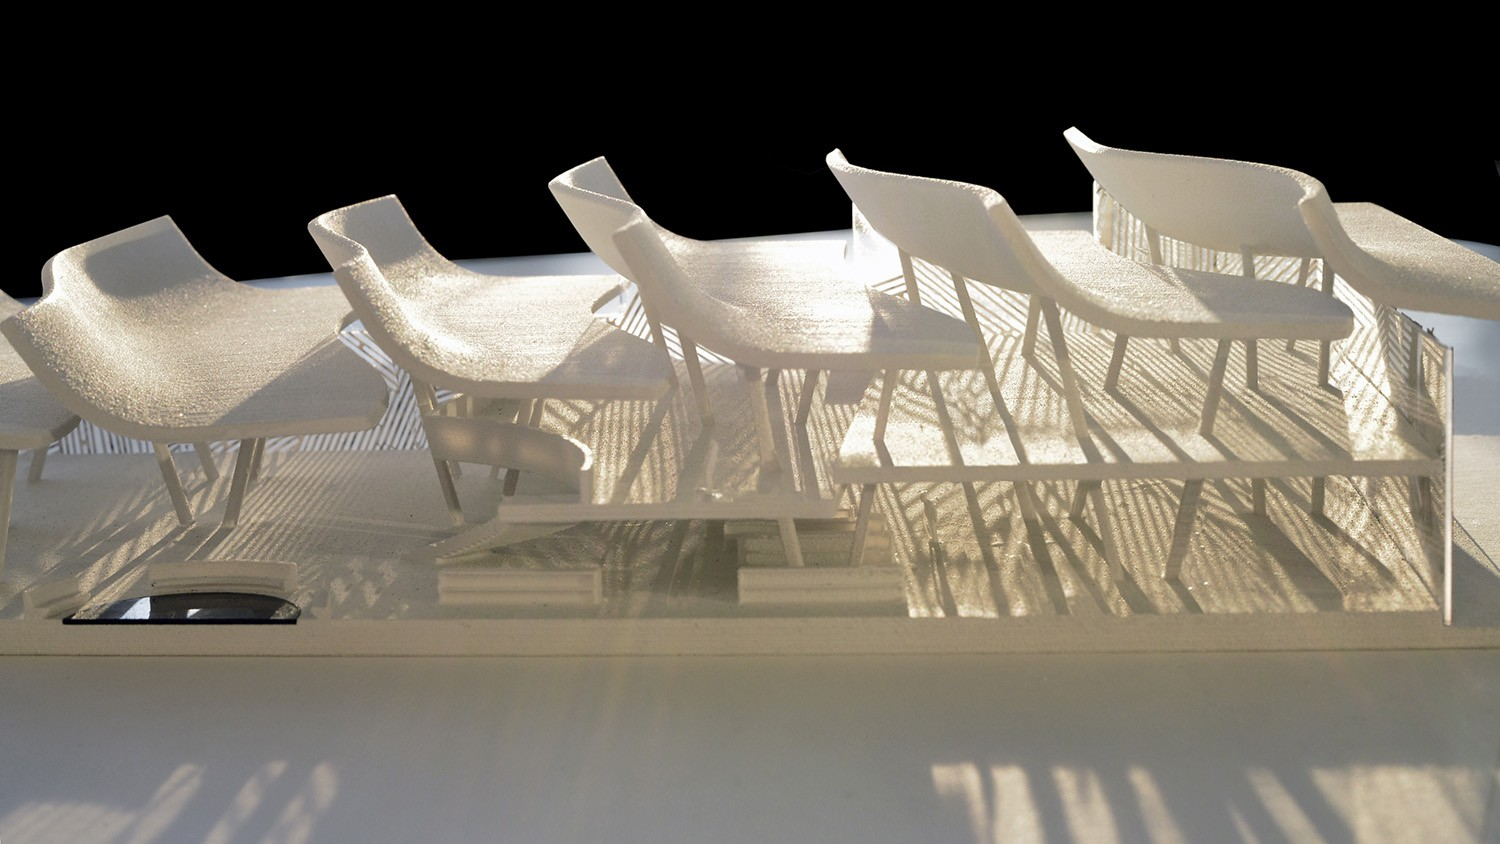 https://s3.us-east-2.amazonaws.com/steven-holl/uploads/projects/project-images/StevenHollArchitects_Malawi_Model_Section_WH.jpg